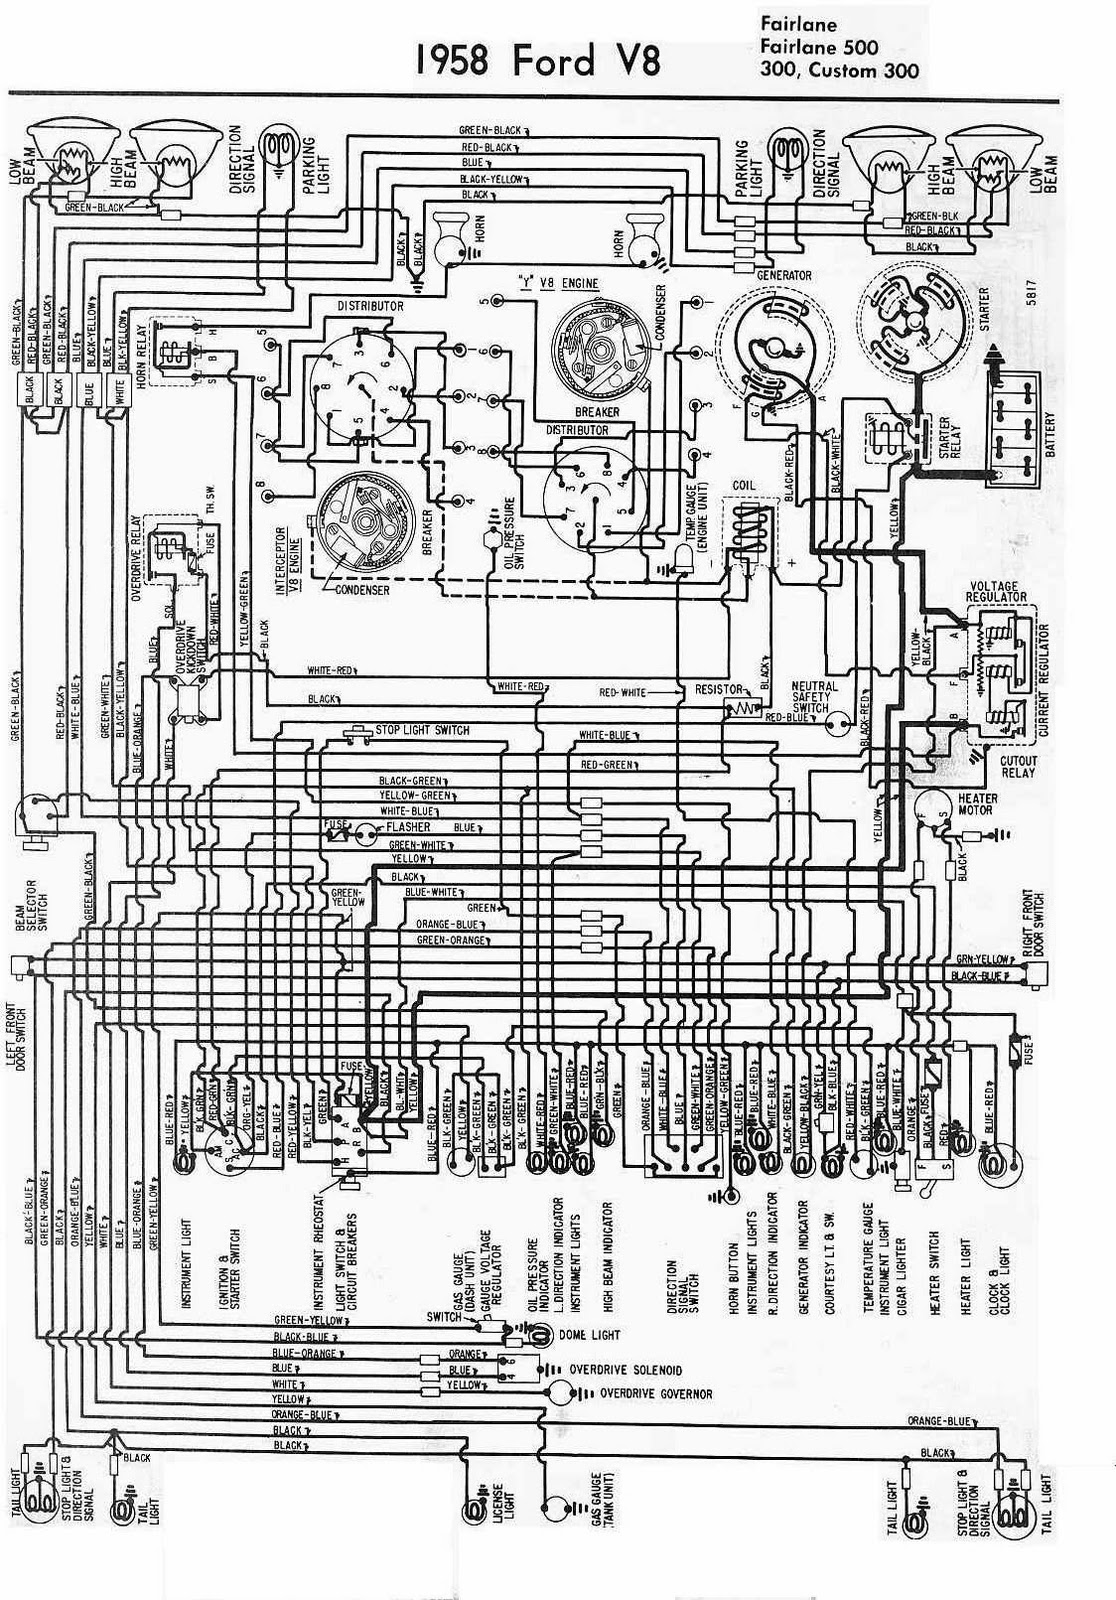 1968 Ford F100 Ignition Wiring Diagram Library Pickup 1955 House Symbols U2022 Rh Maxturner Co Electronic 68